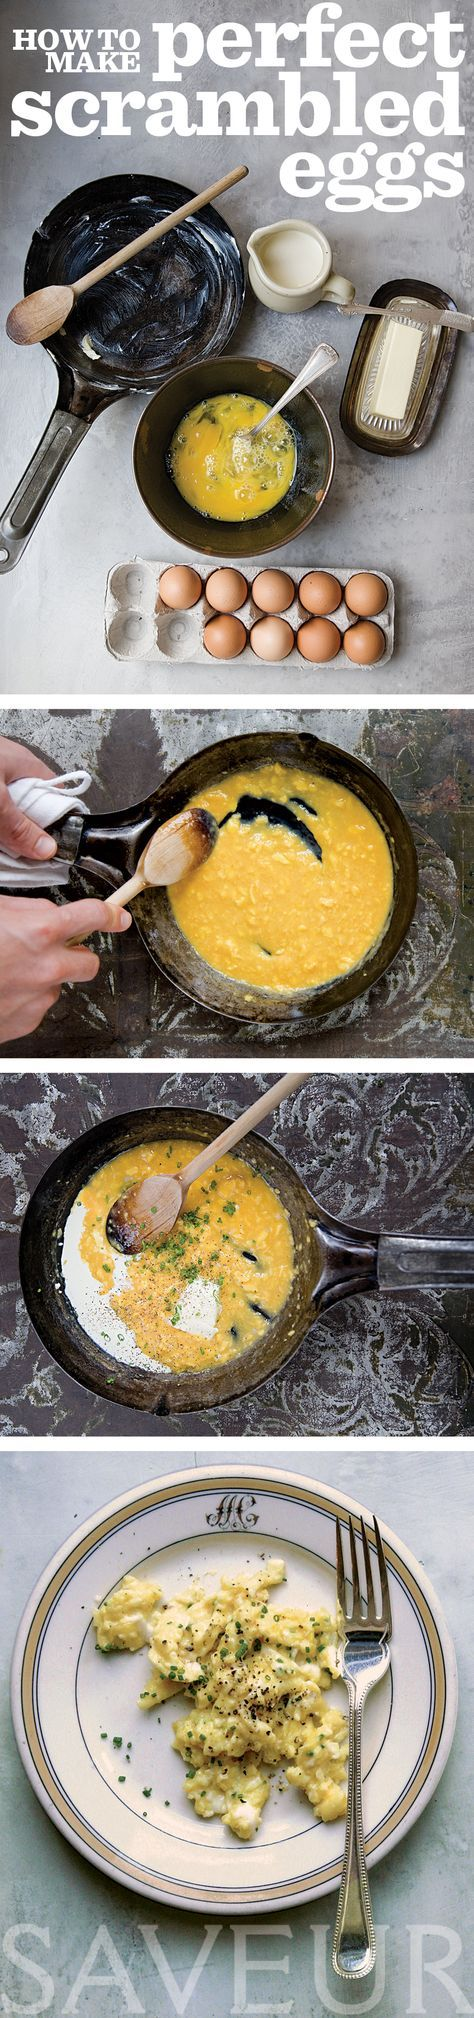 I already thought I made perfect scrambled eggs! But it sounds good, Ill definitely have to try it.. Perfect, creamy-soft scrambled eggs in 4 simple steps.